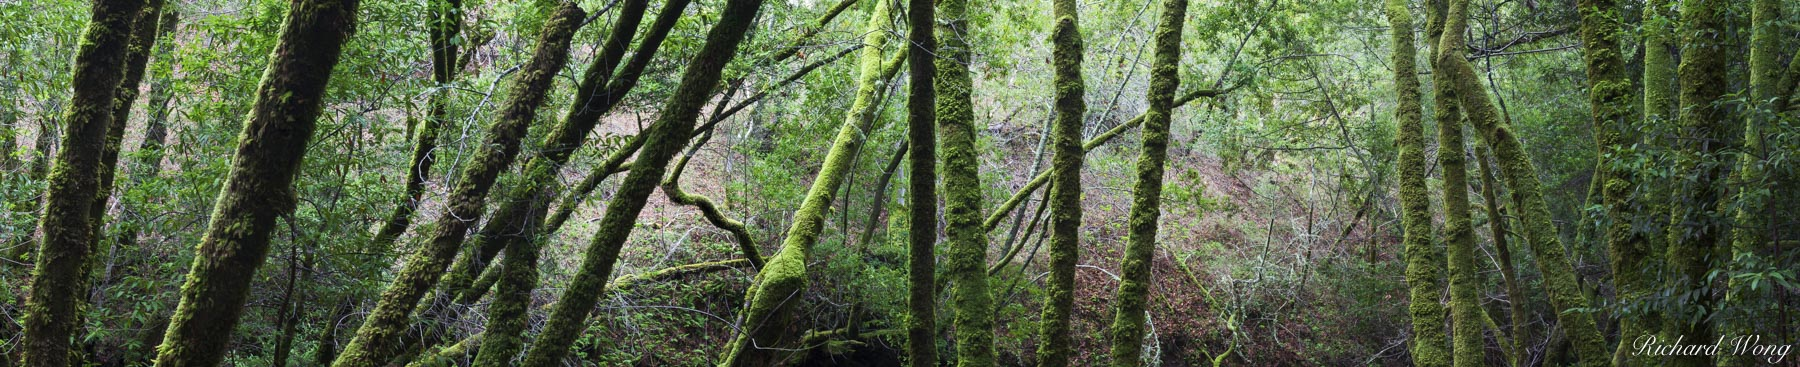 Mossy Forest Panoramic Photo, Cascade Canyon Open Space Preserve, California, photo, photo